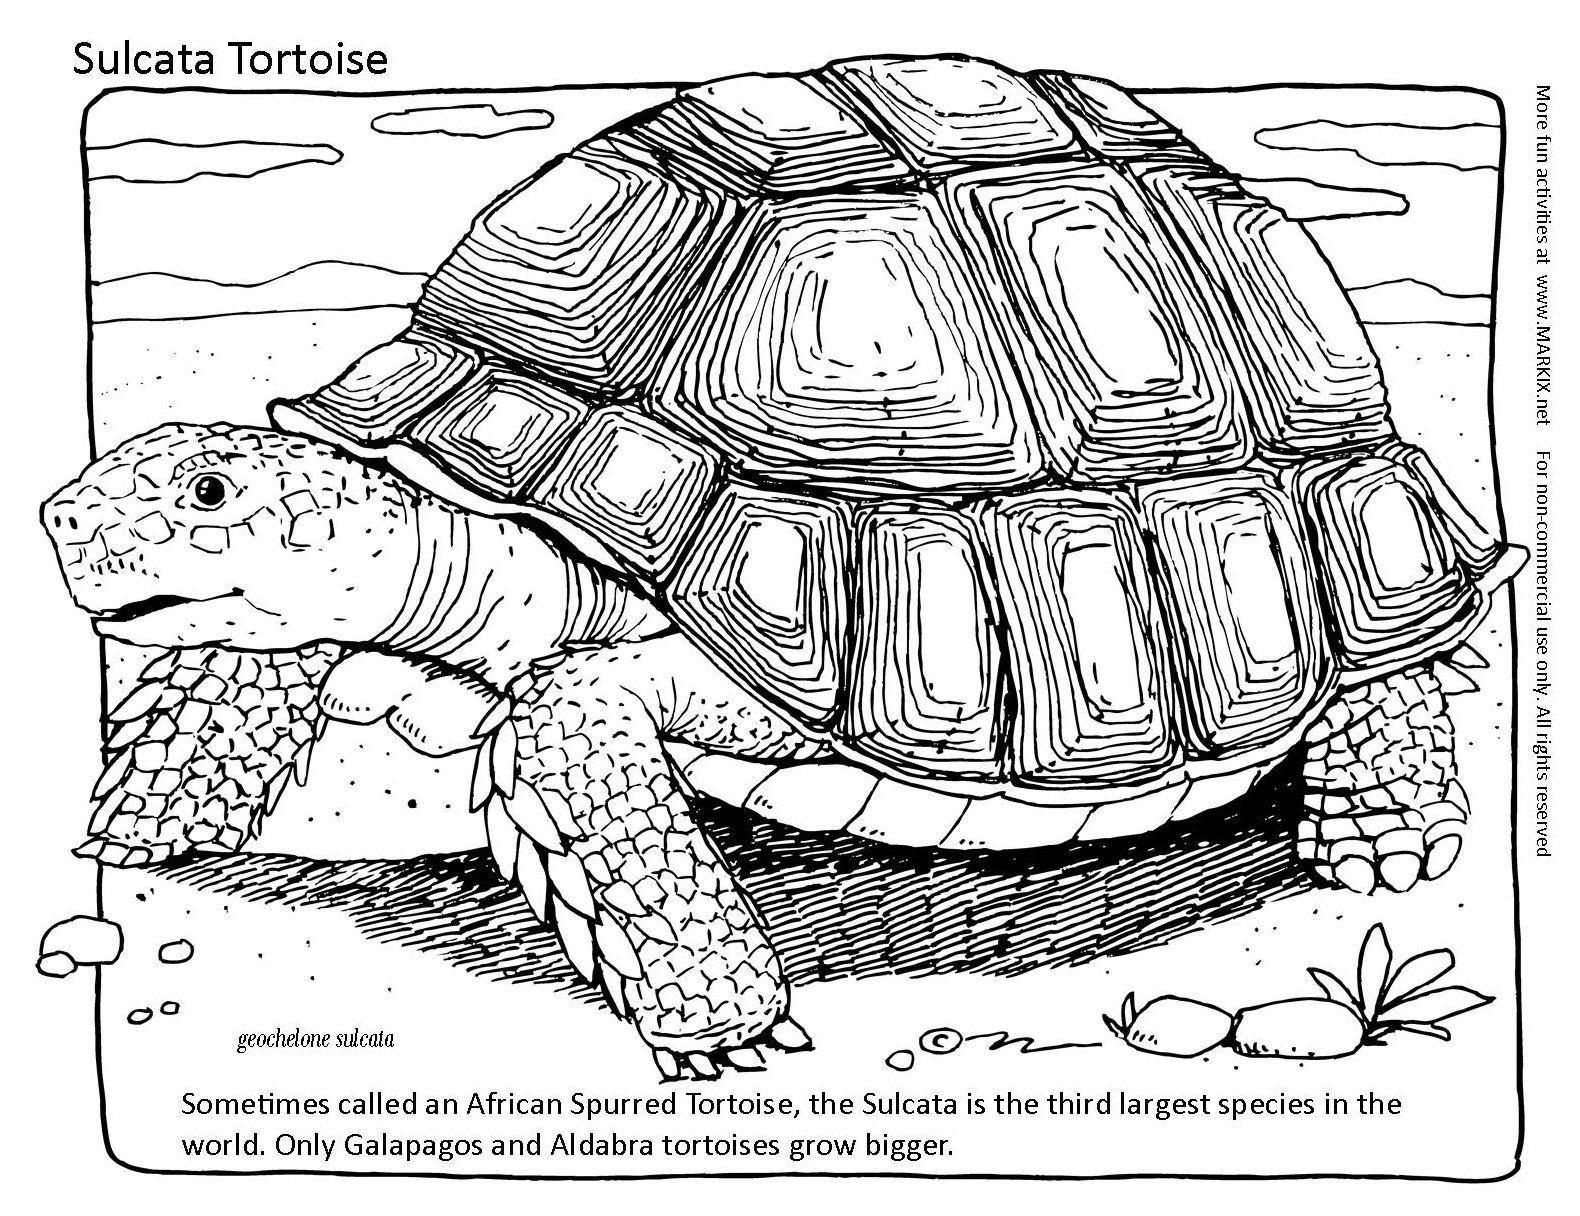 painted turtle coloring page painted turtle coloring page coloring page turtle painted